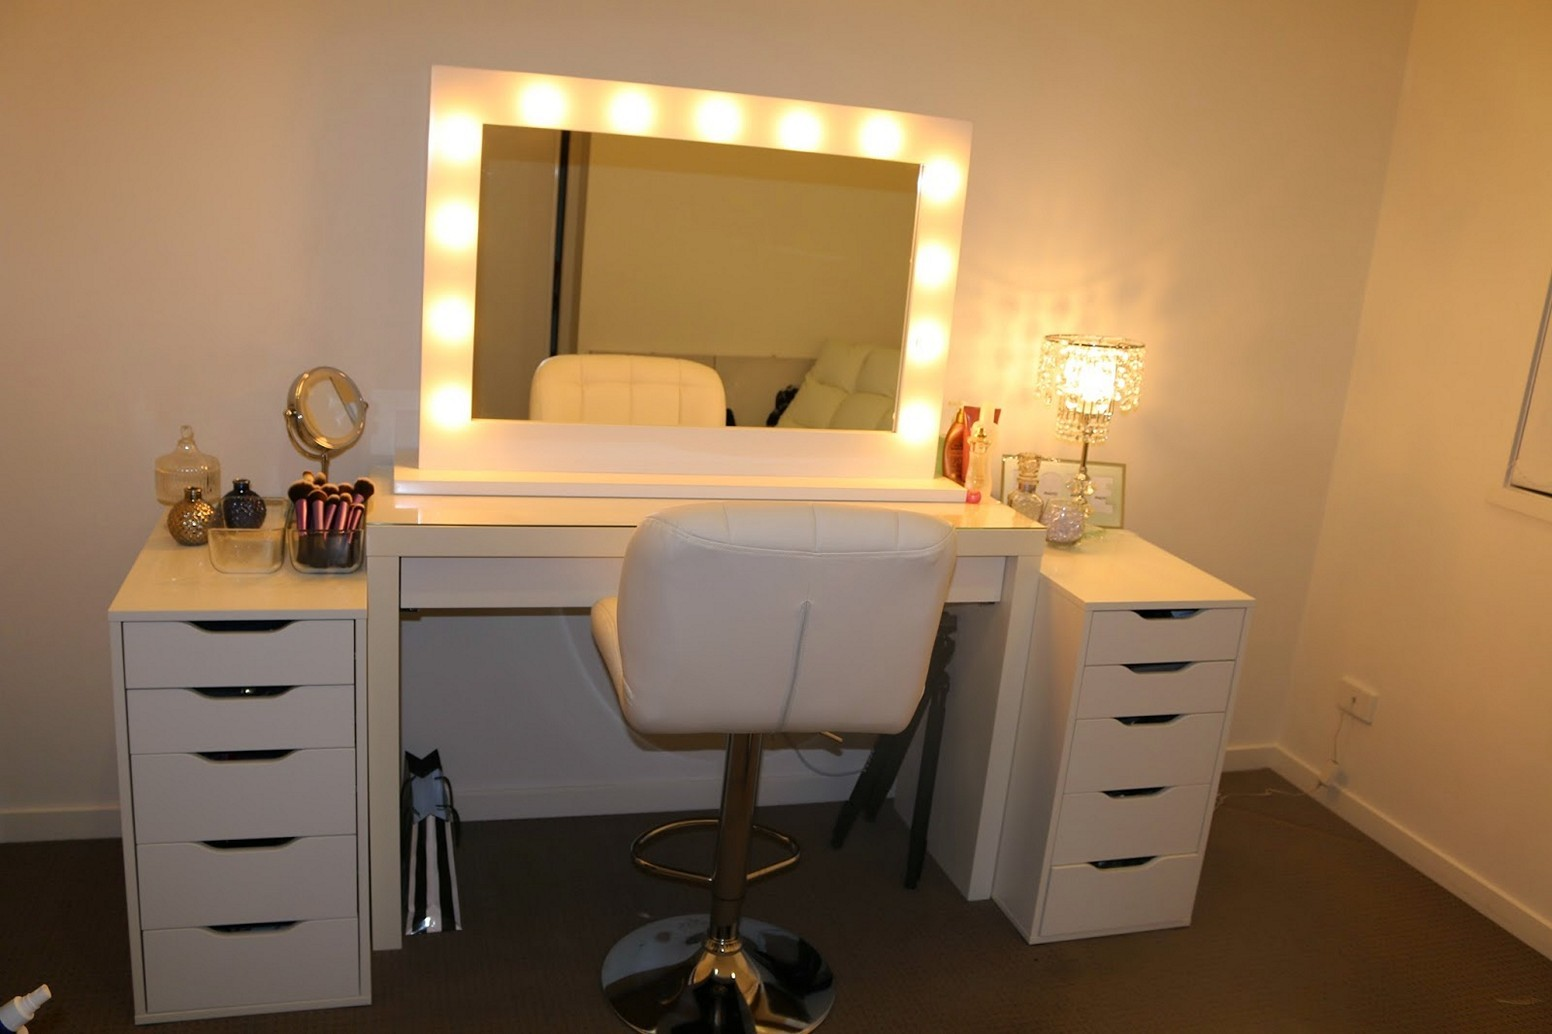 Bathroom Makeup Vanity | Vanity Desk | Makeup Vanity Table With Lighted Mirror